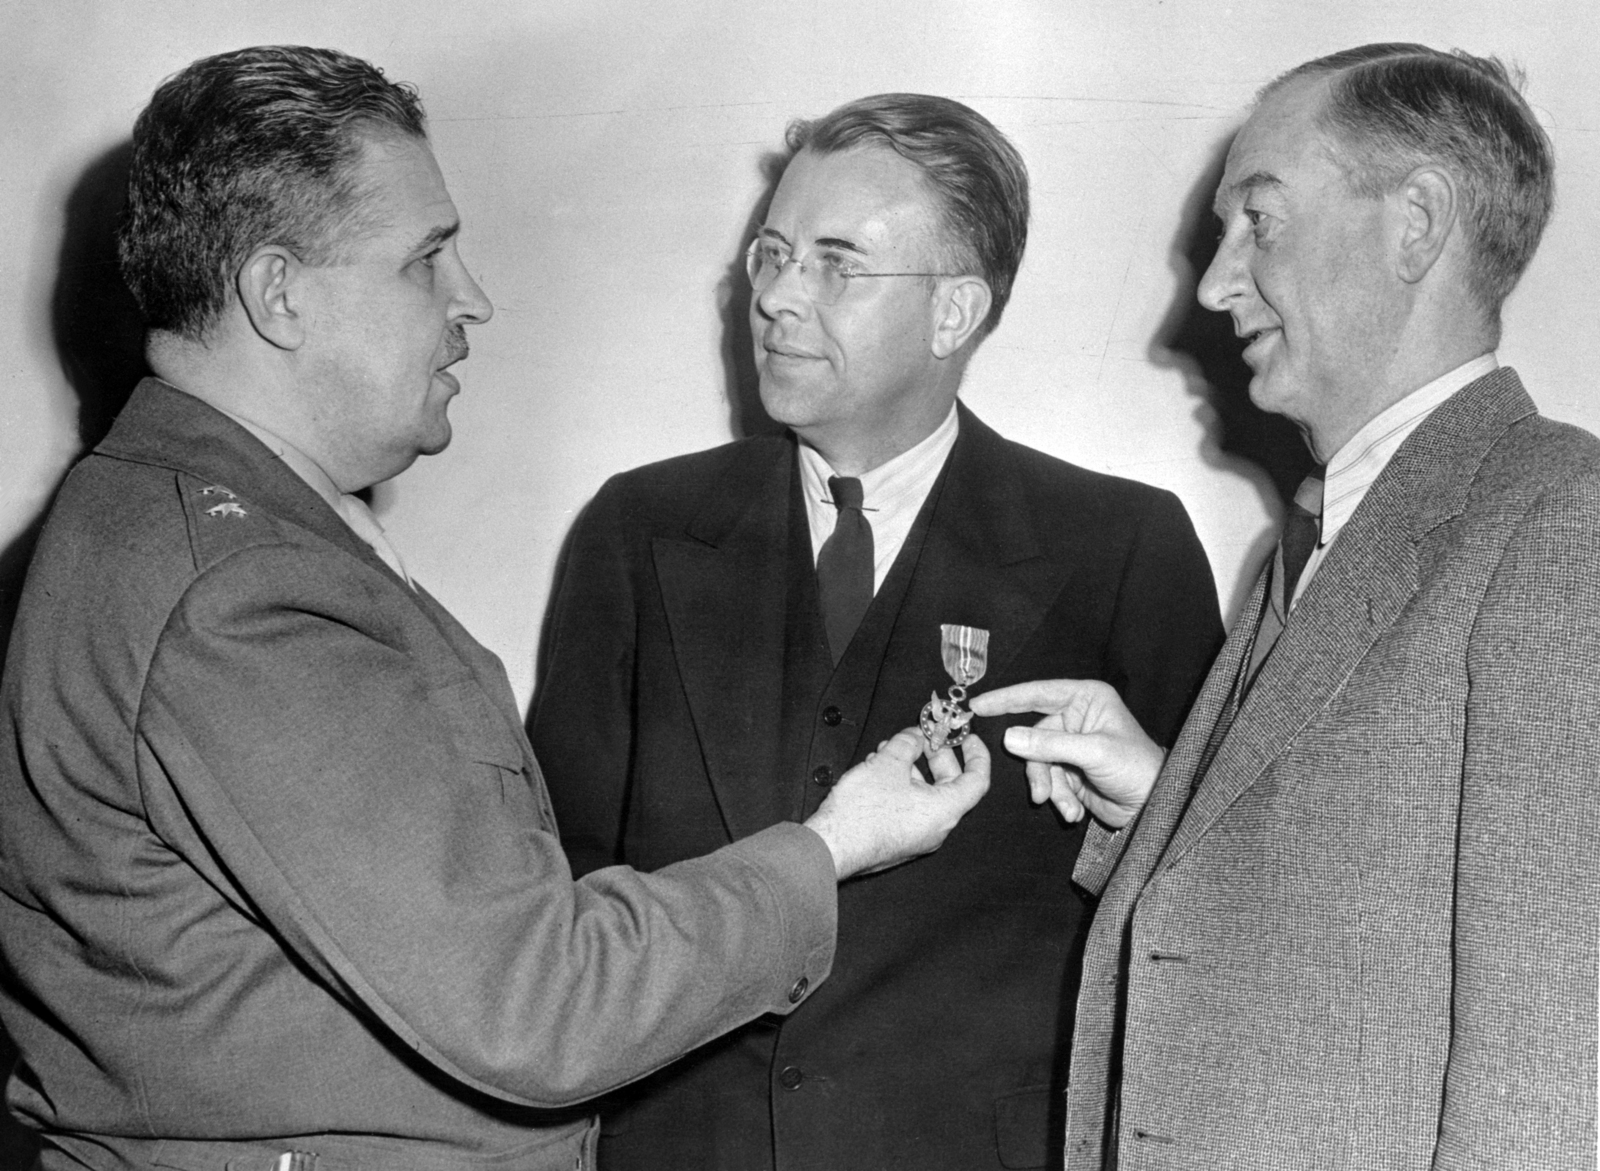 General Groves (left) and University of California, Berkeley President Robert Gordon Sproul (right) admire the Medal of Merit awarded to Ernest Orlando Lawrence in March, 1946 for his wartime achievements. Morgue 1958-8 (P-30) [Photographer: Donald Cooksey]